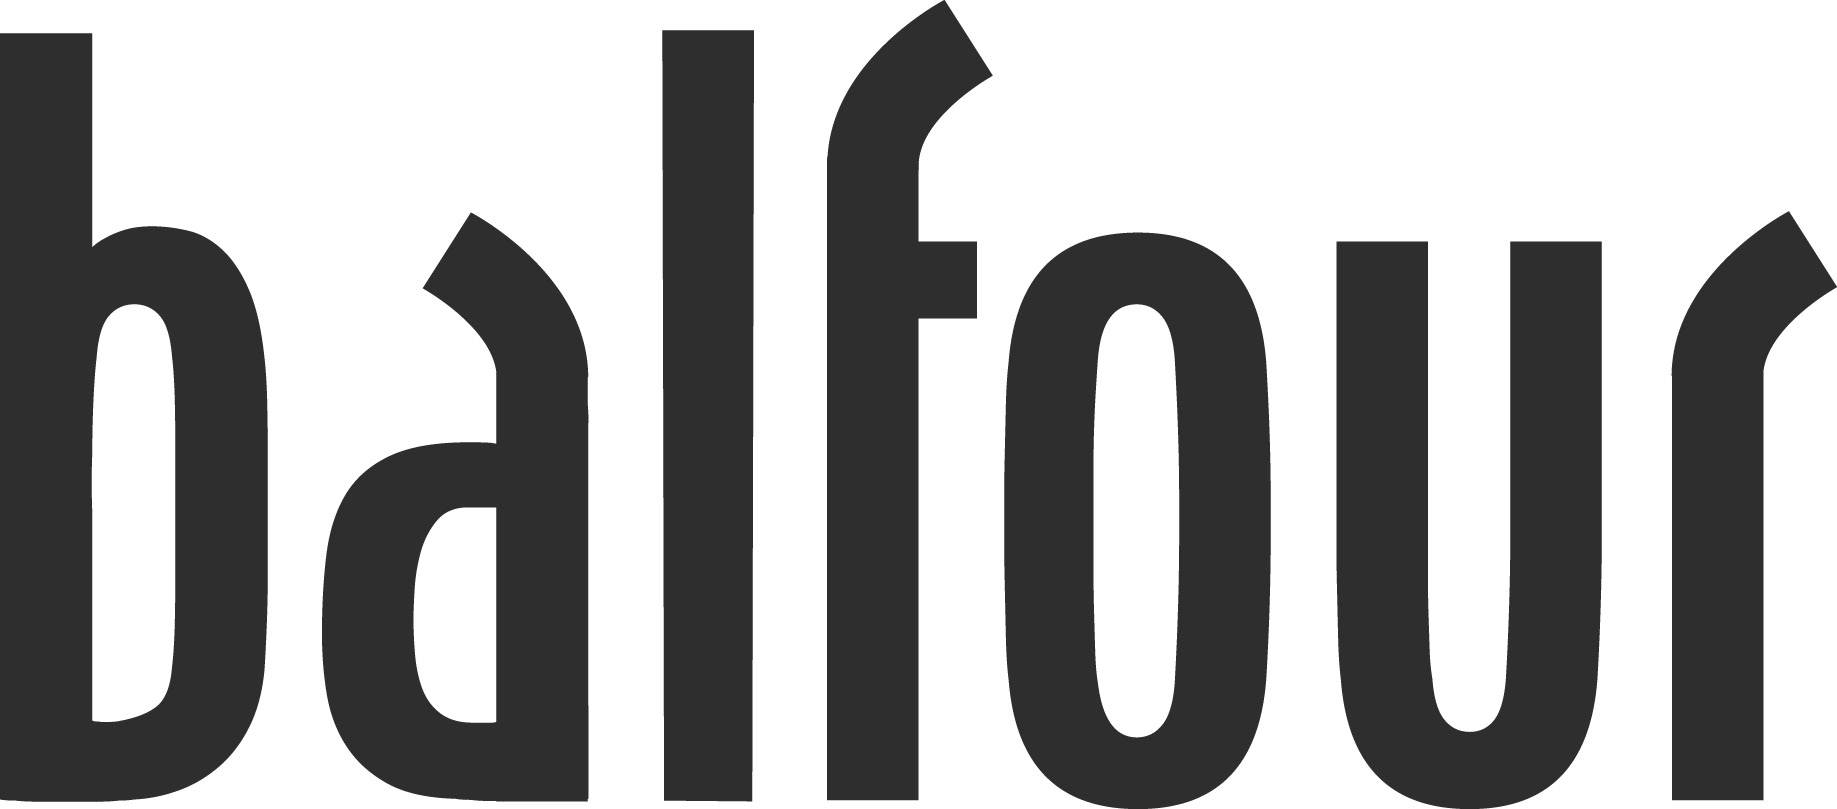 Balfour electric